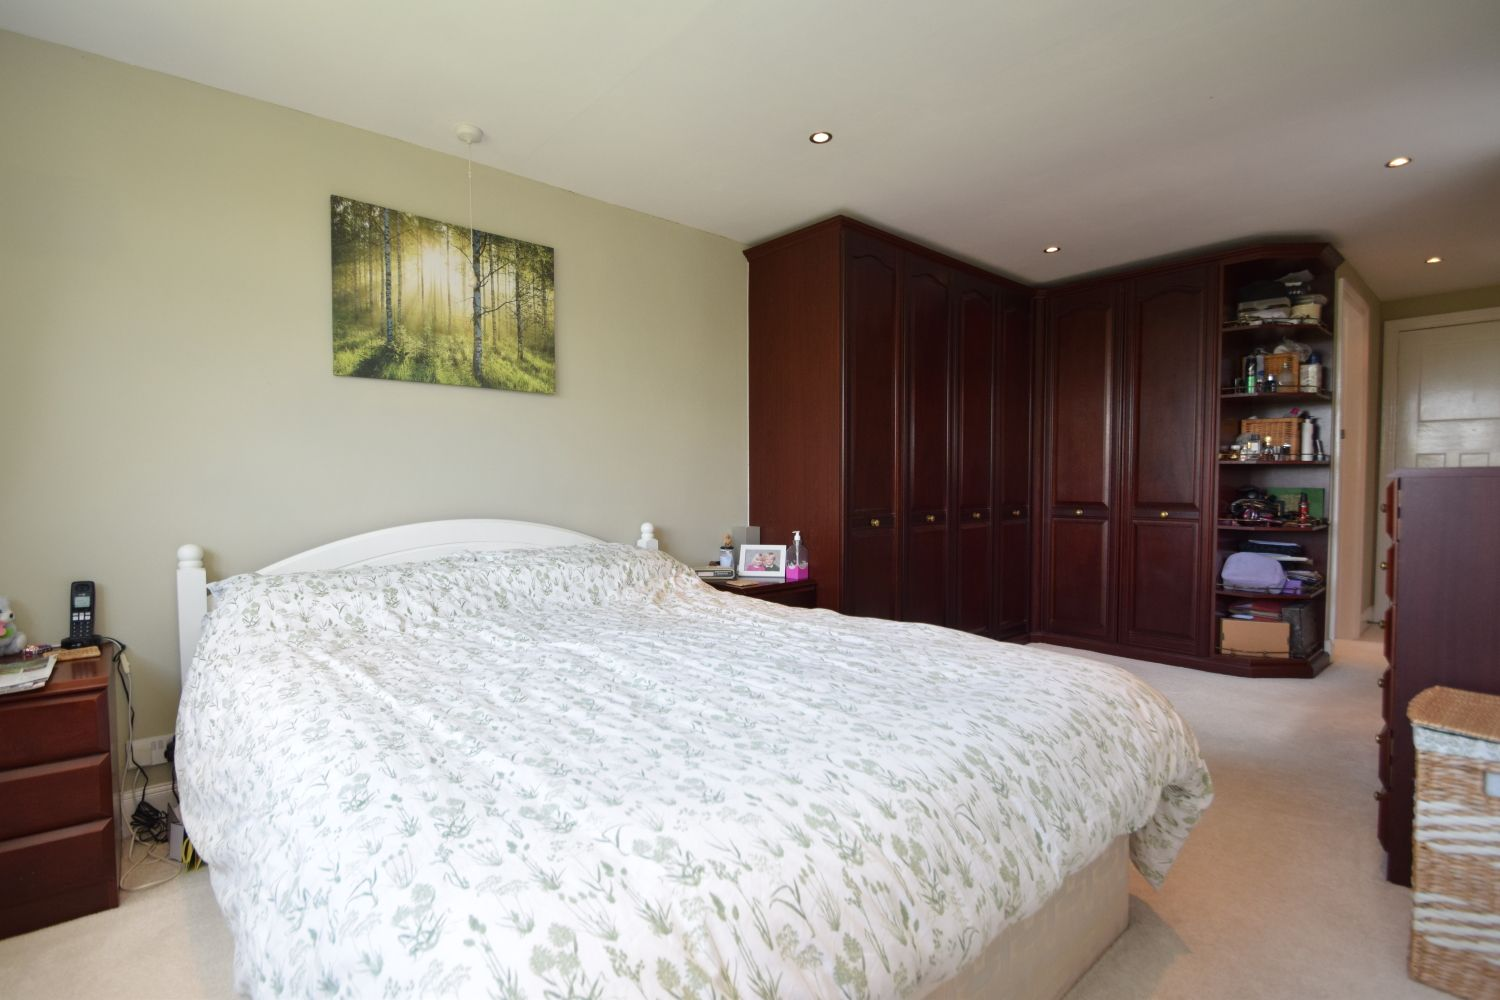 3 bed detached for sale in Reservoir Road, Cofton Hackett  - Property Image 11